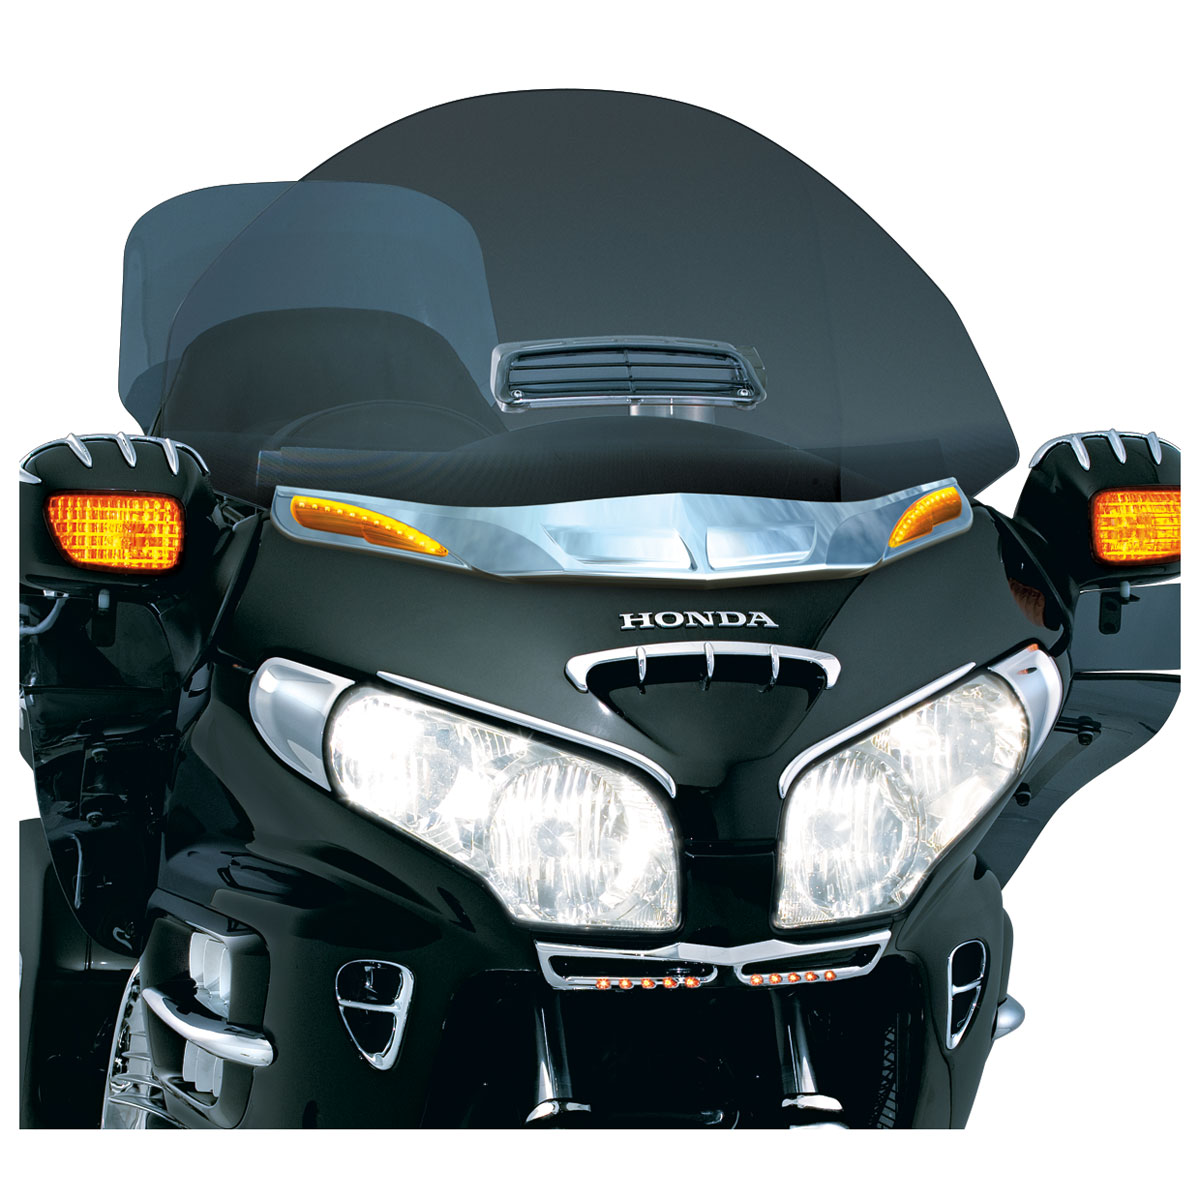 Kuryakyn Windshield Trim with Turn Signal Accents for GL1800 Gold Wing